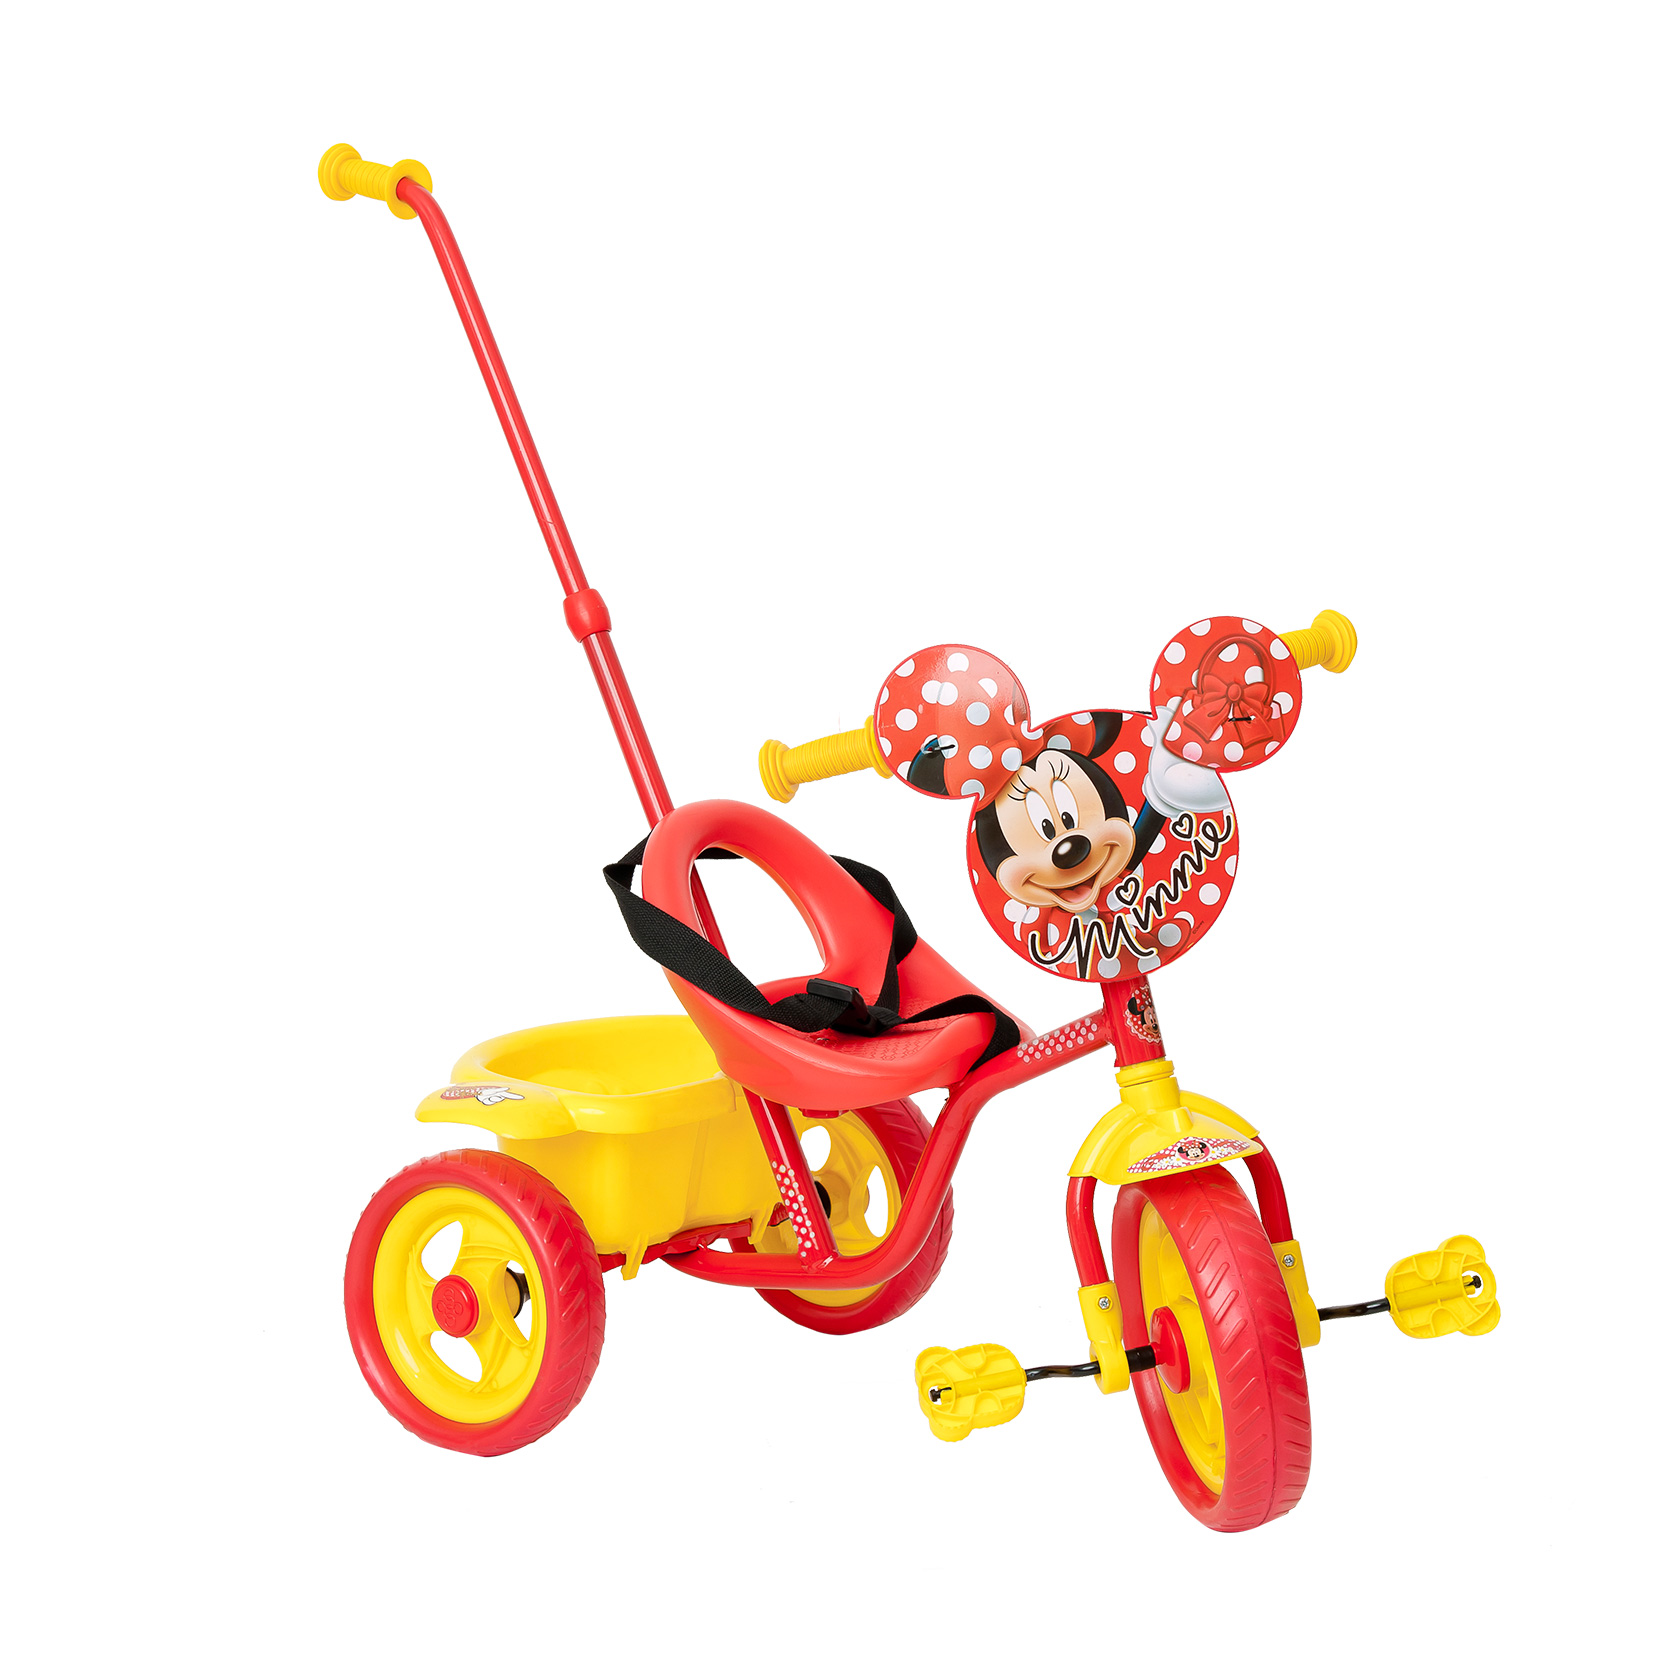 Minnie Mouse Push Handle Trike.